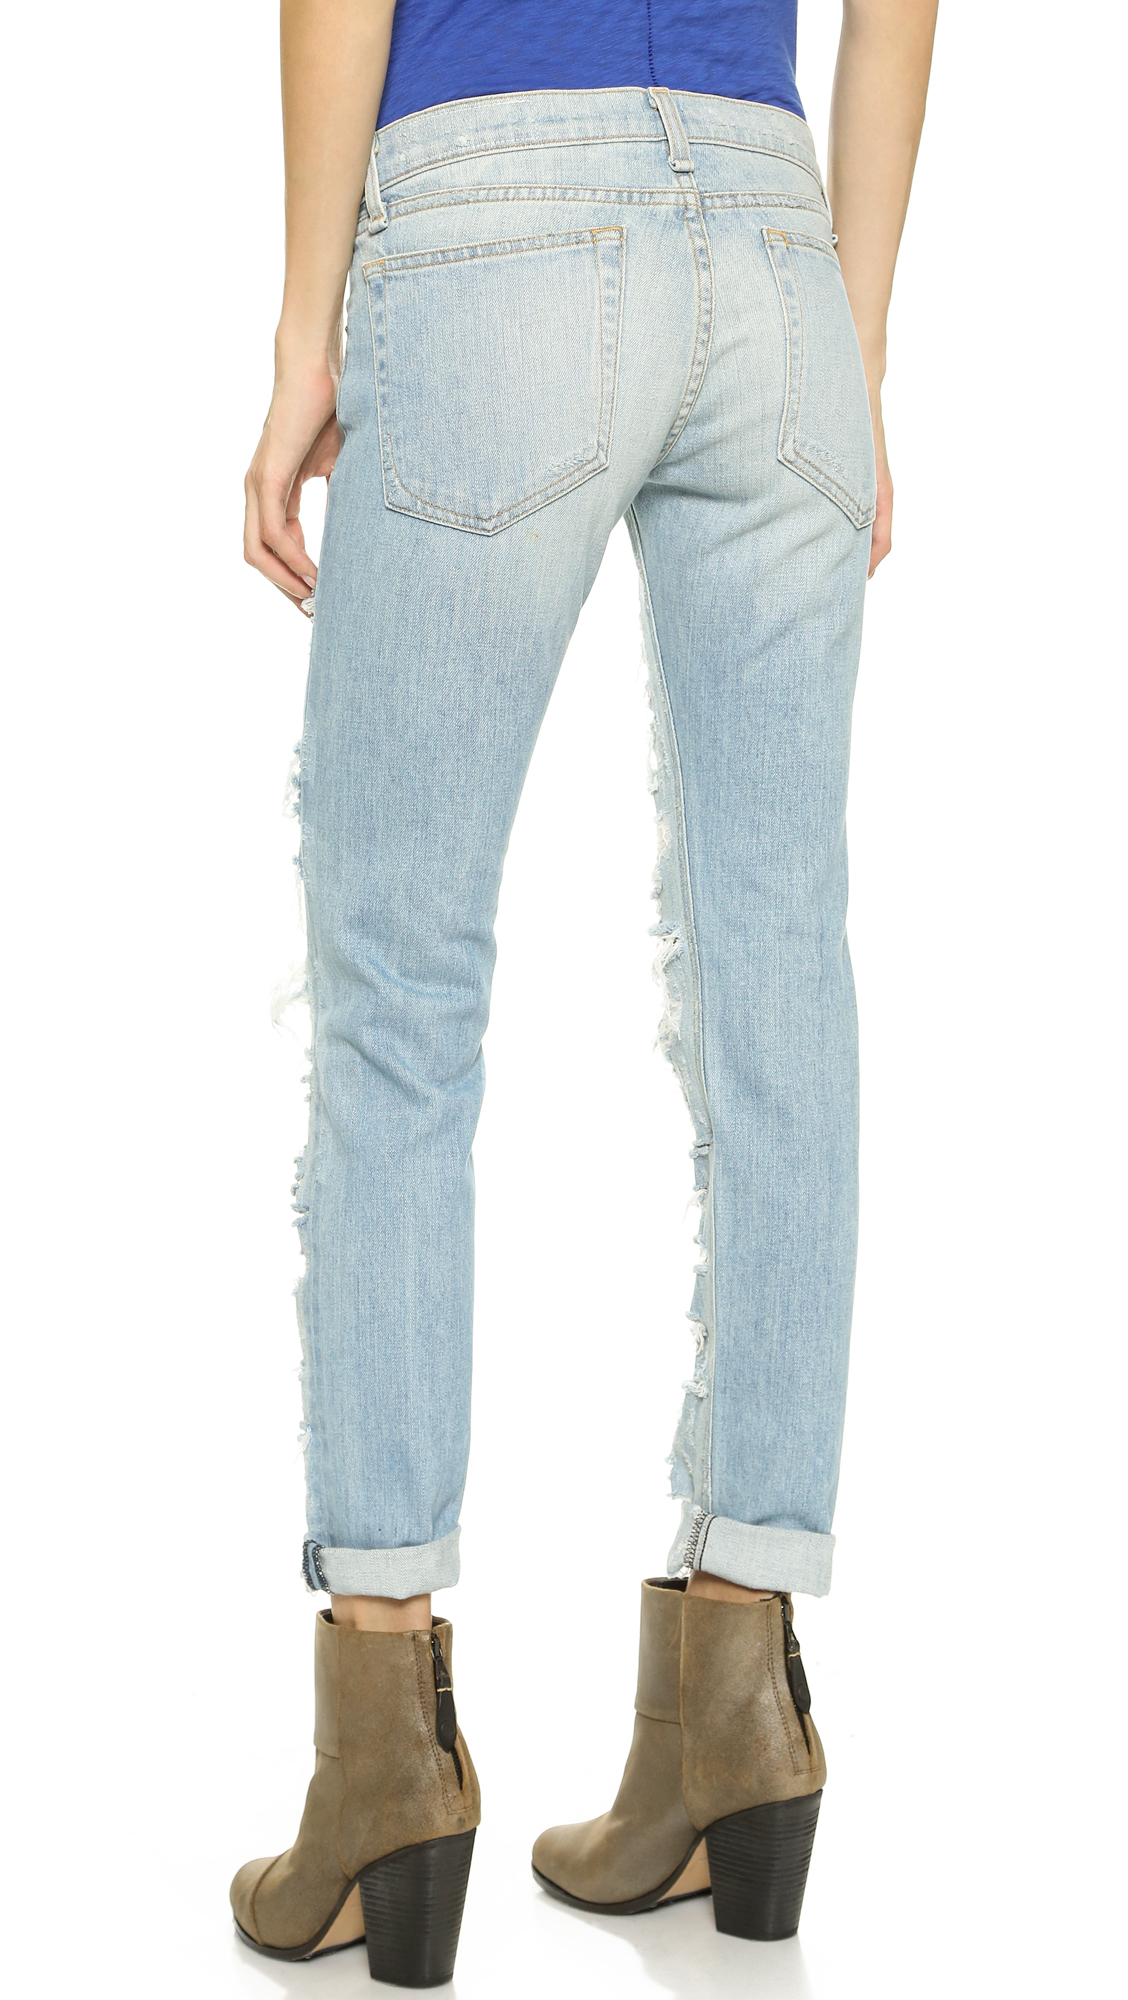 b08947f2be4 Rag & Bone Dre Skinny Boyfriend Jeans in Blue - Lyst